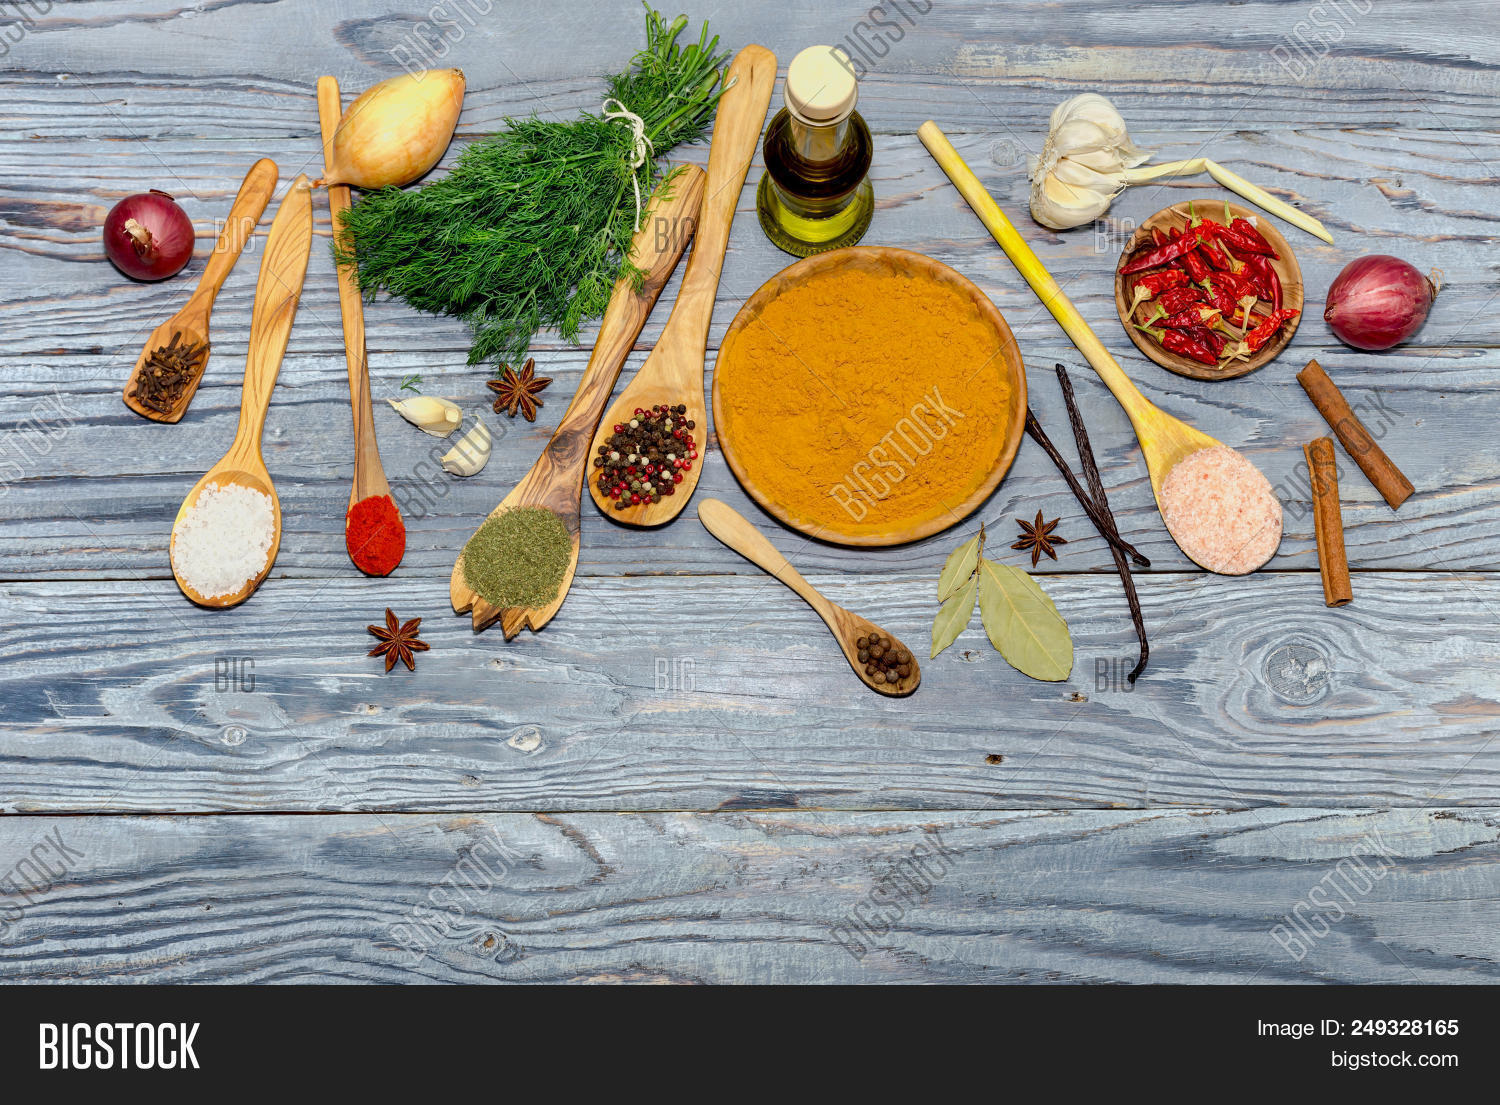 Variety Spices, Olive Image & Photo (Free Trial) | Bigstock